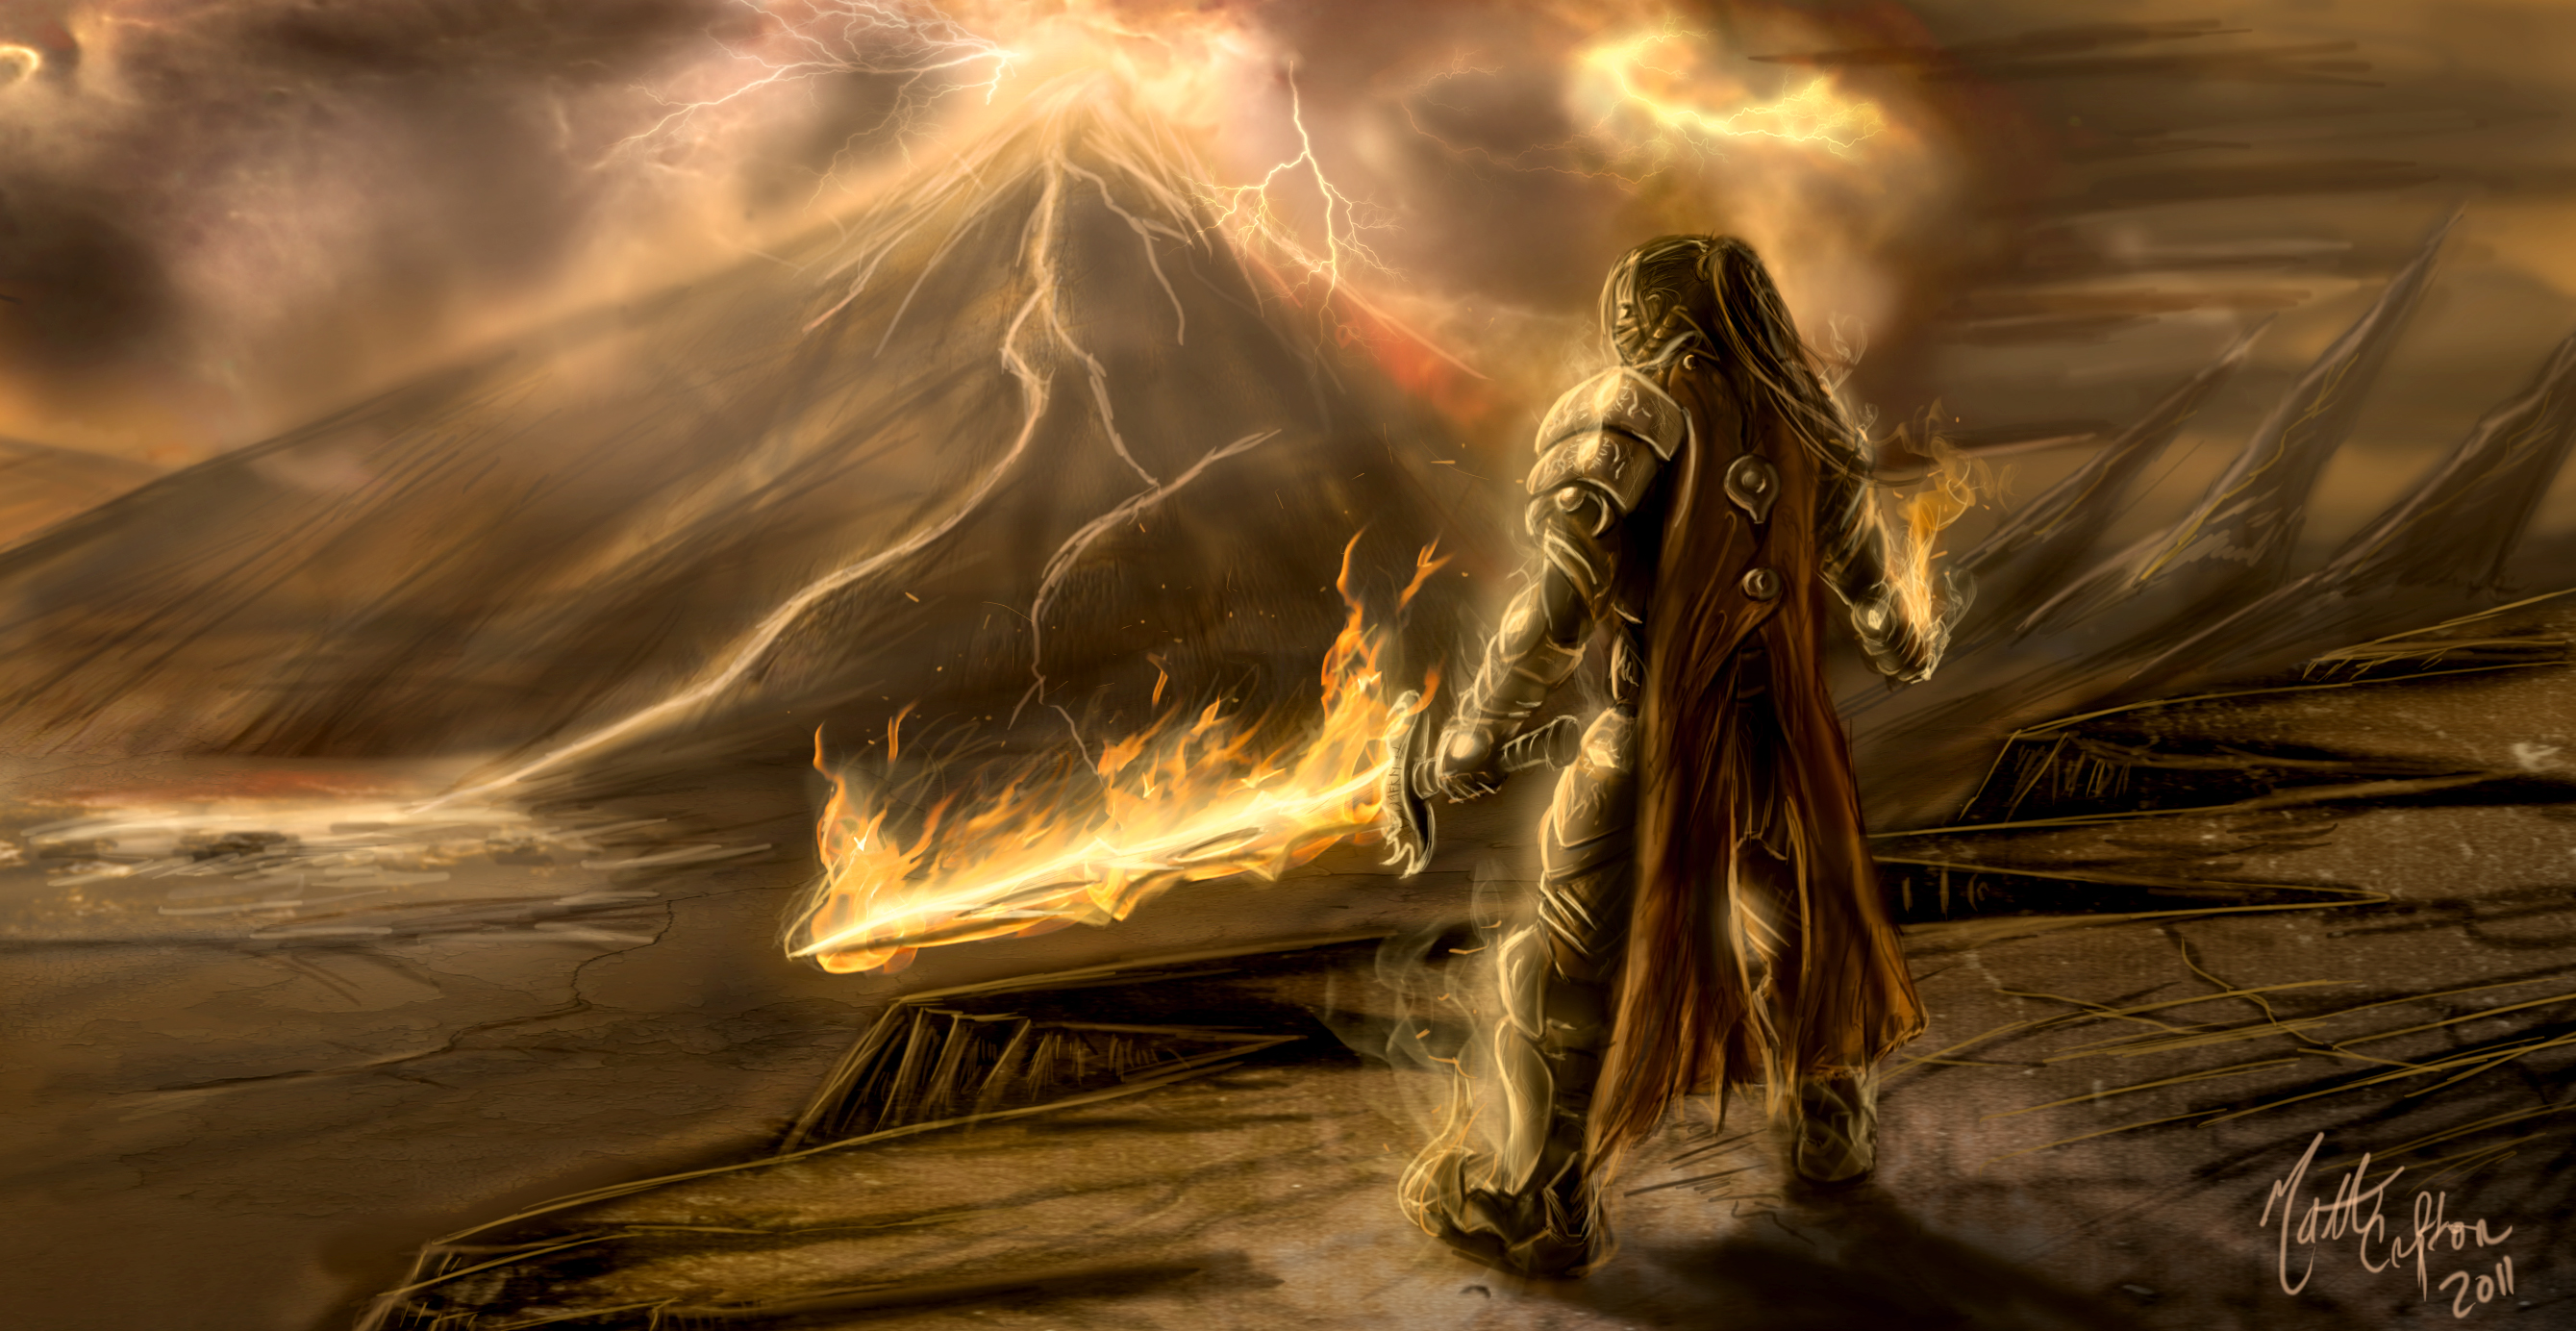 Surtyr, god of fire